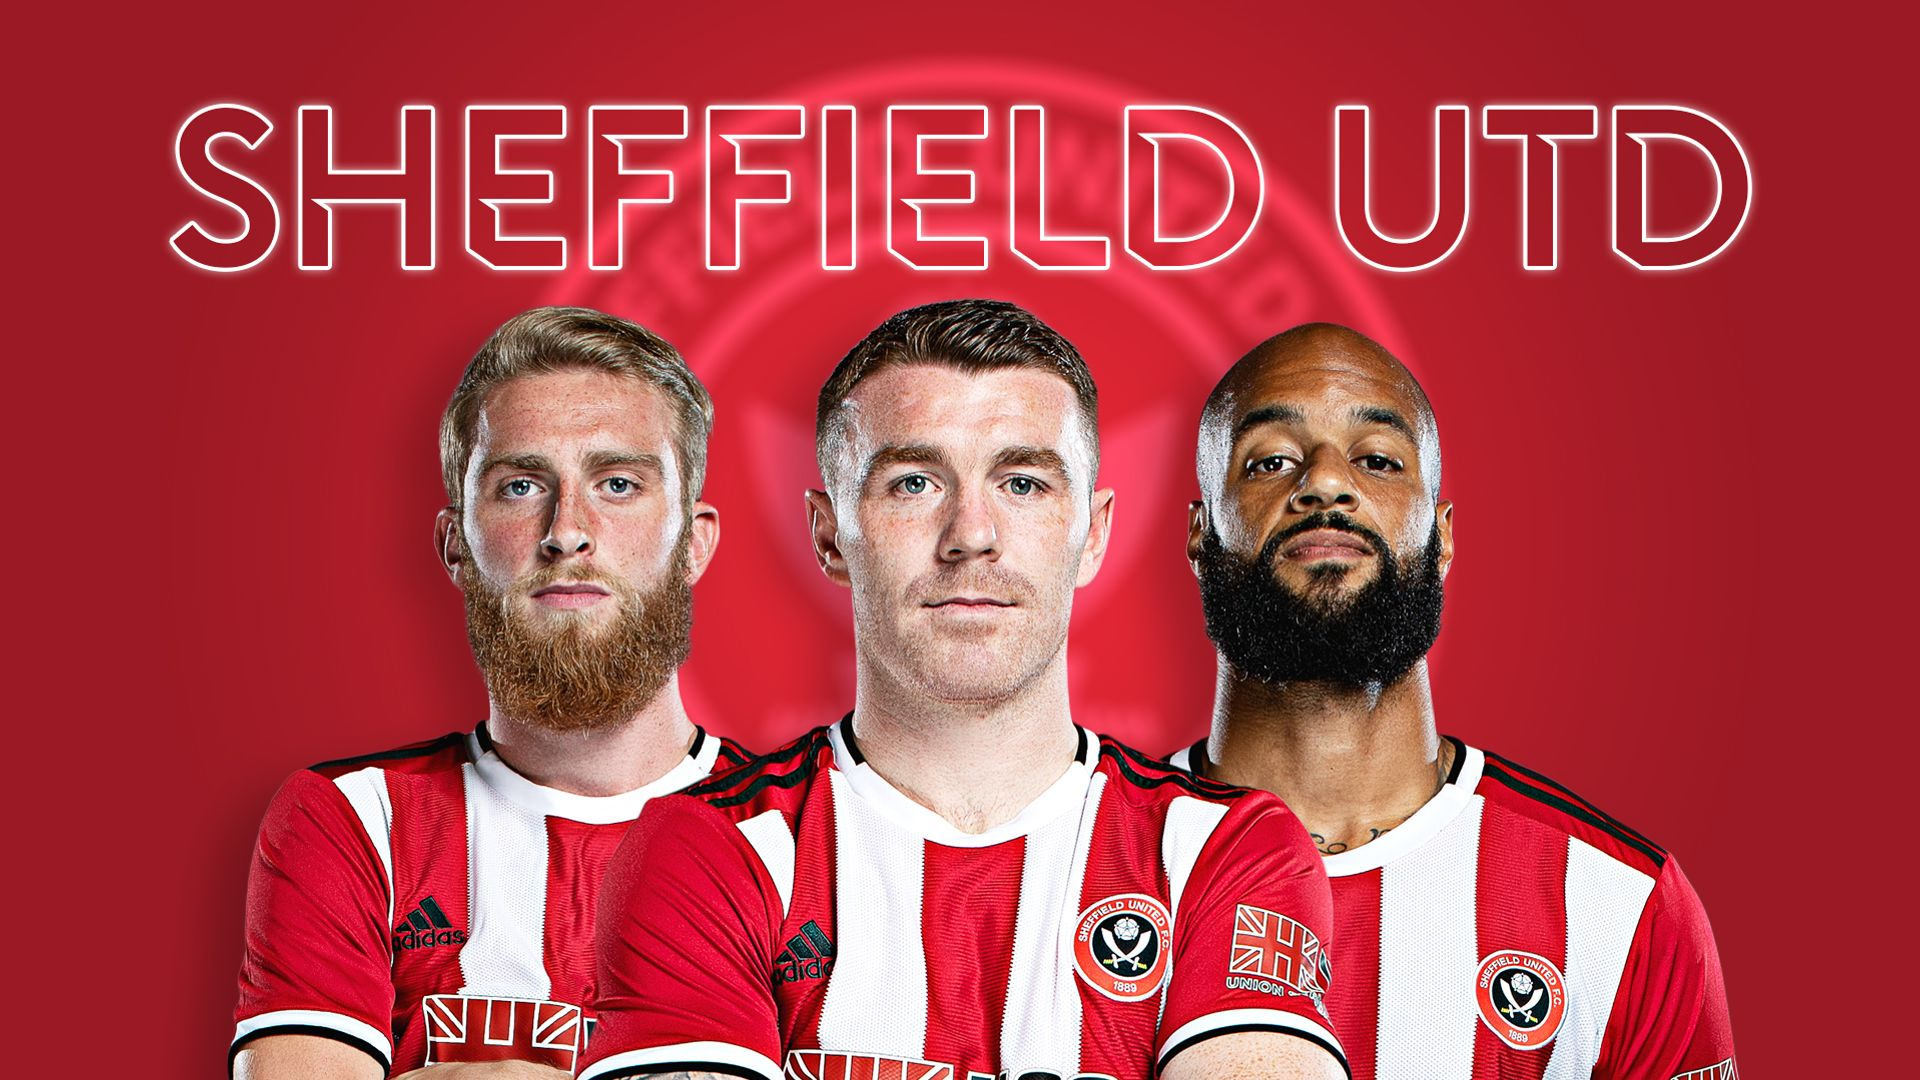 Sheff Utd 2020/21: How to build on last season?